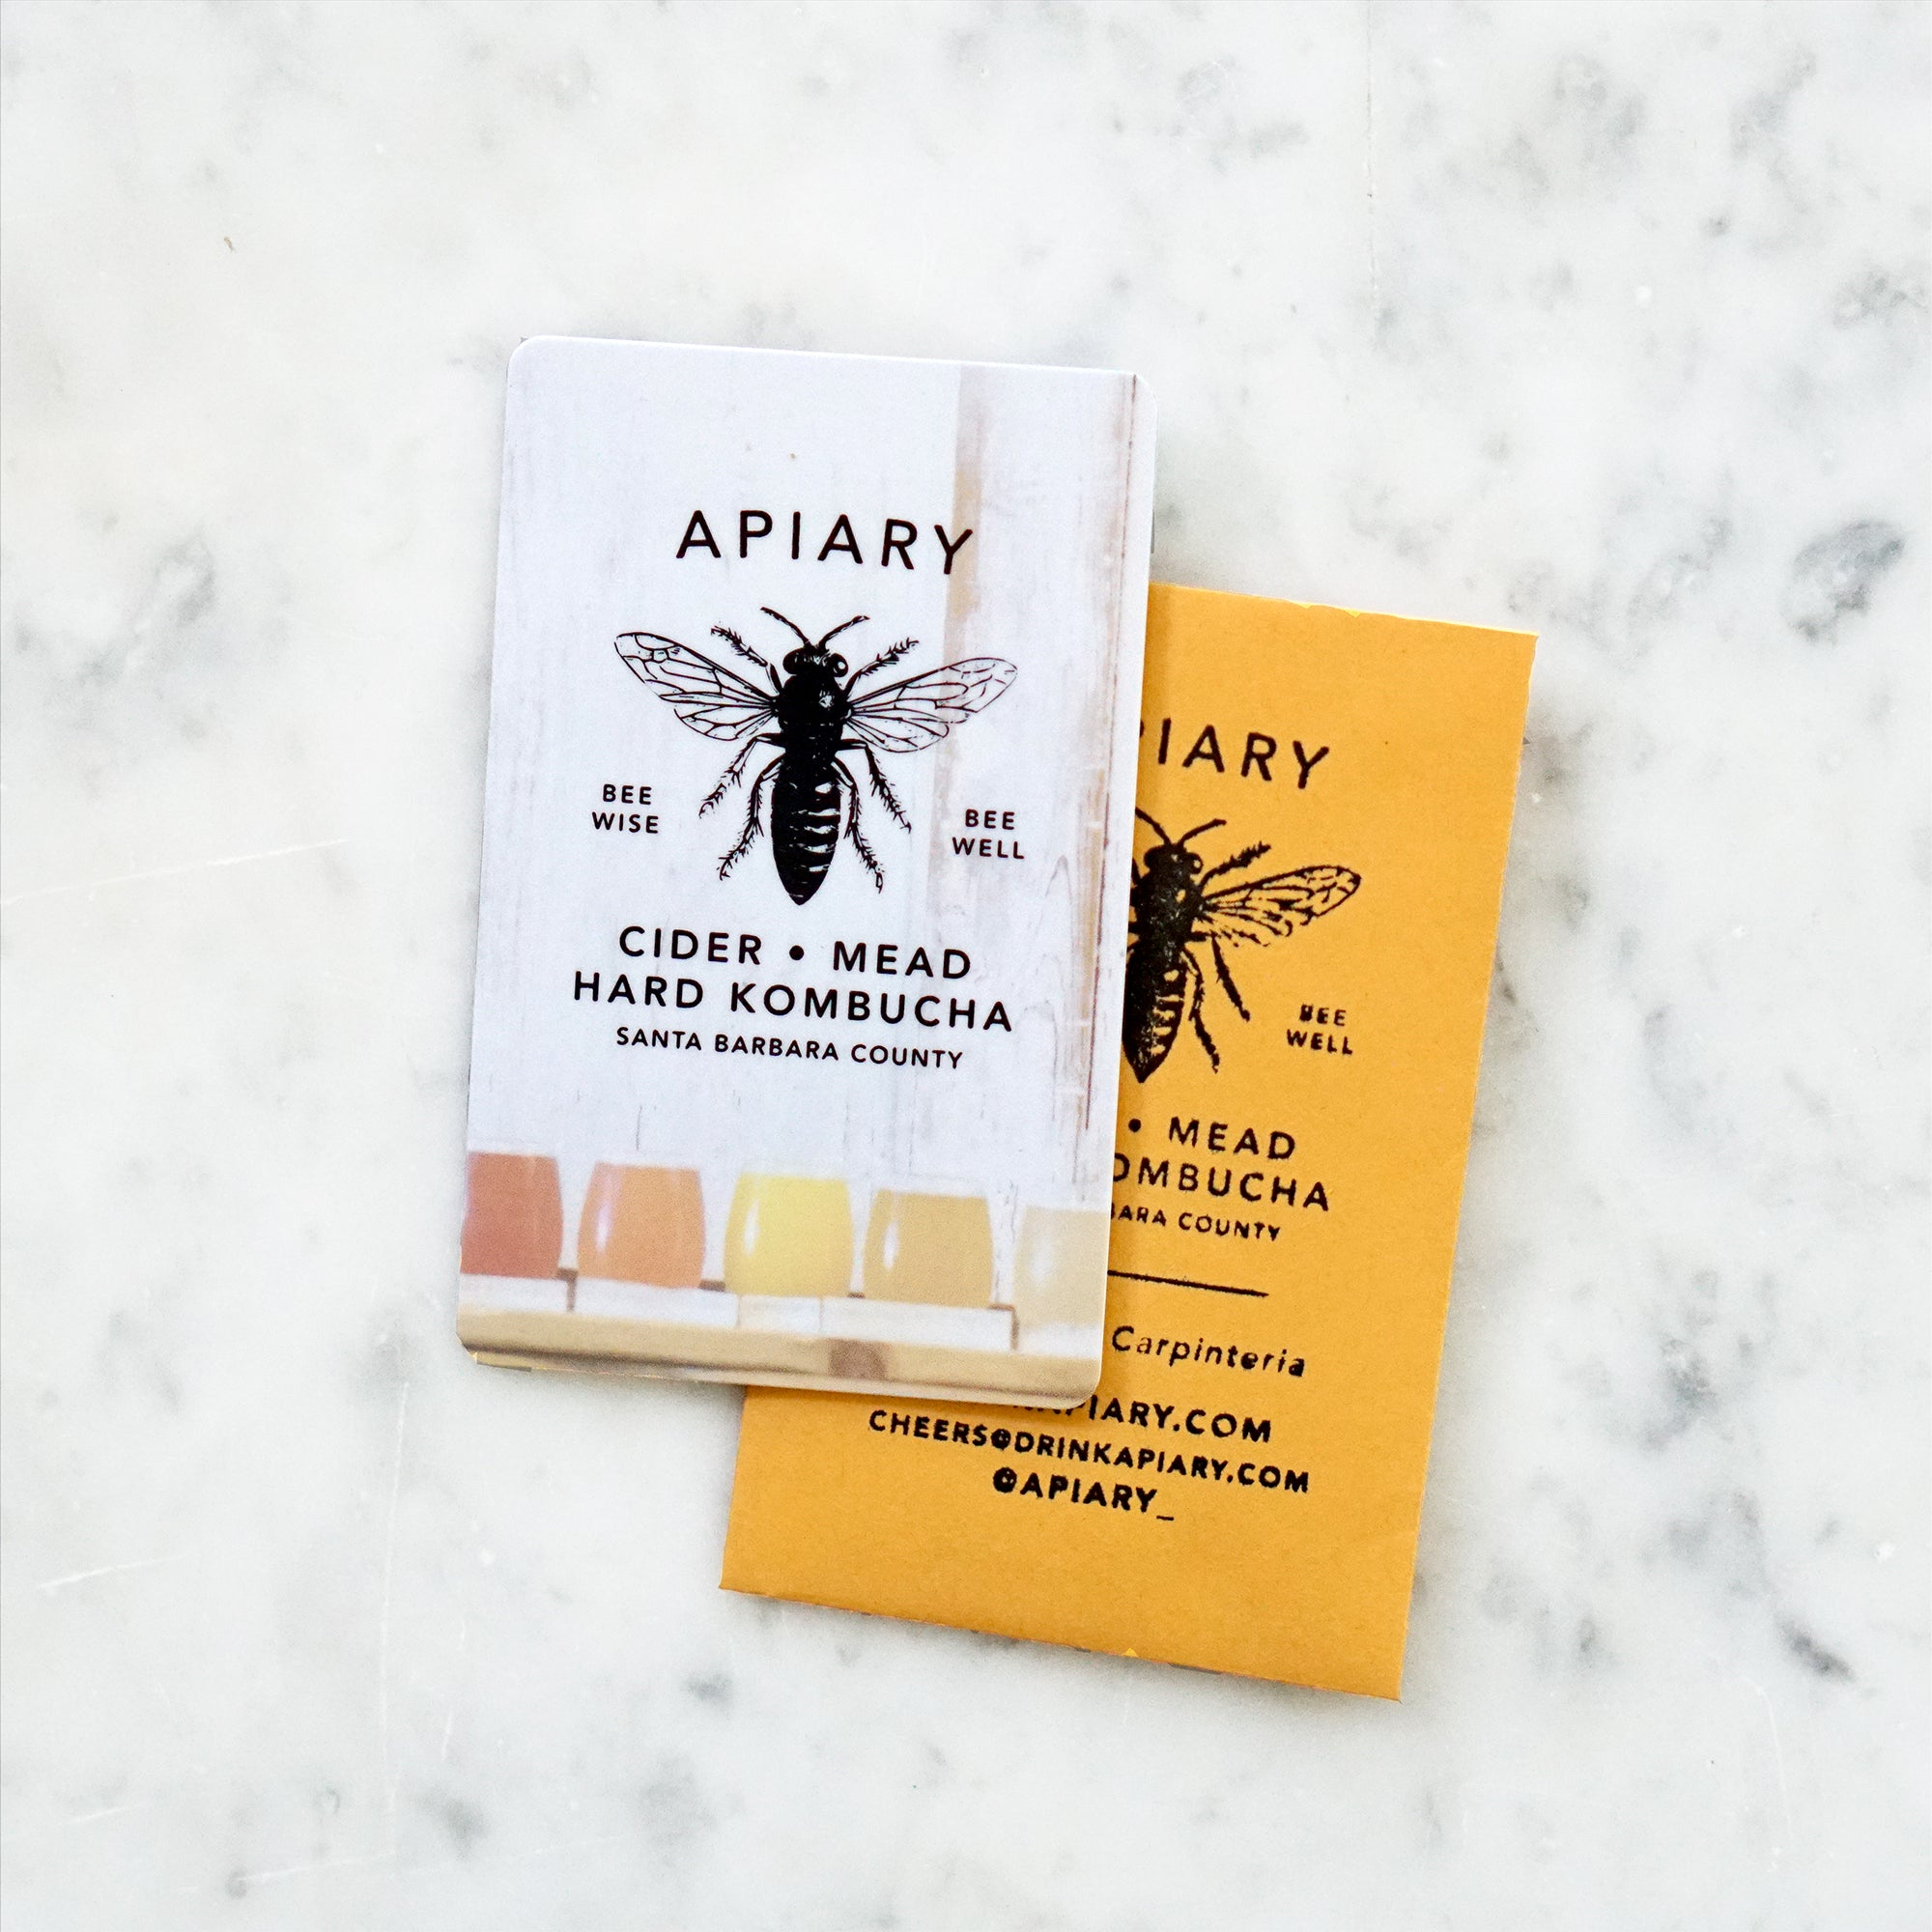 Photo of Apiary gift card and envelope